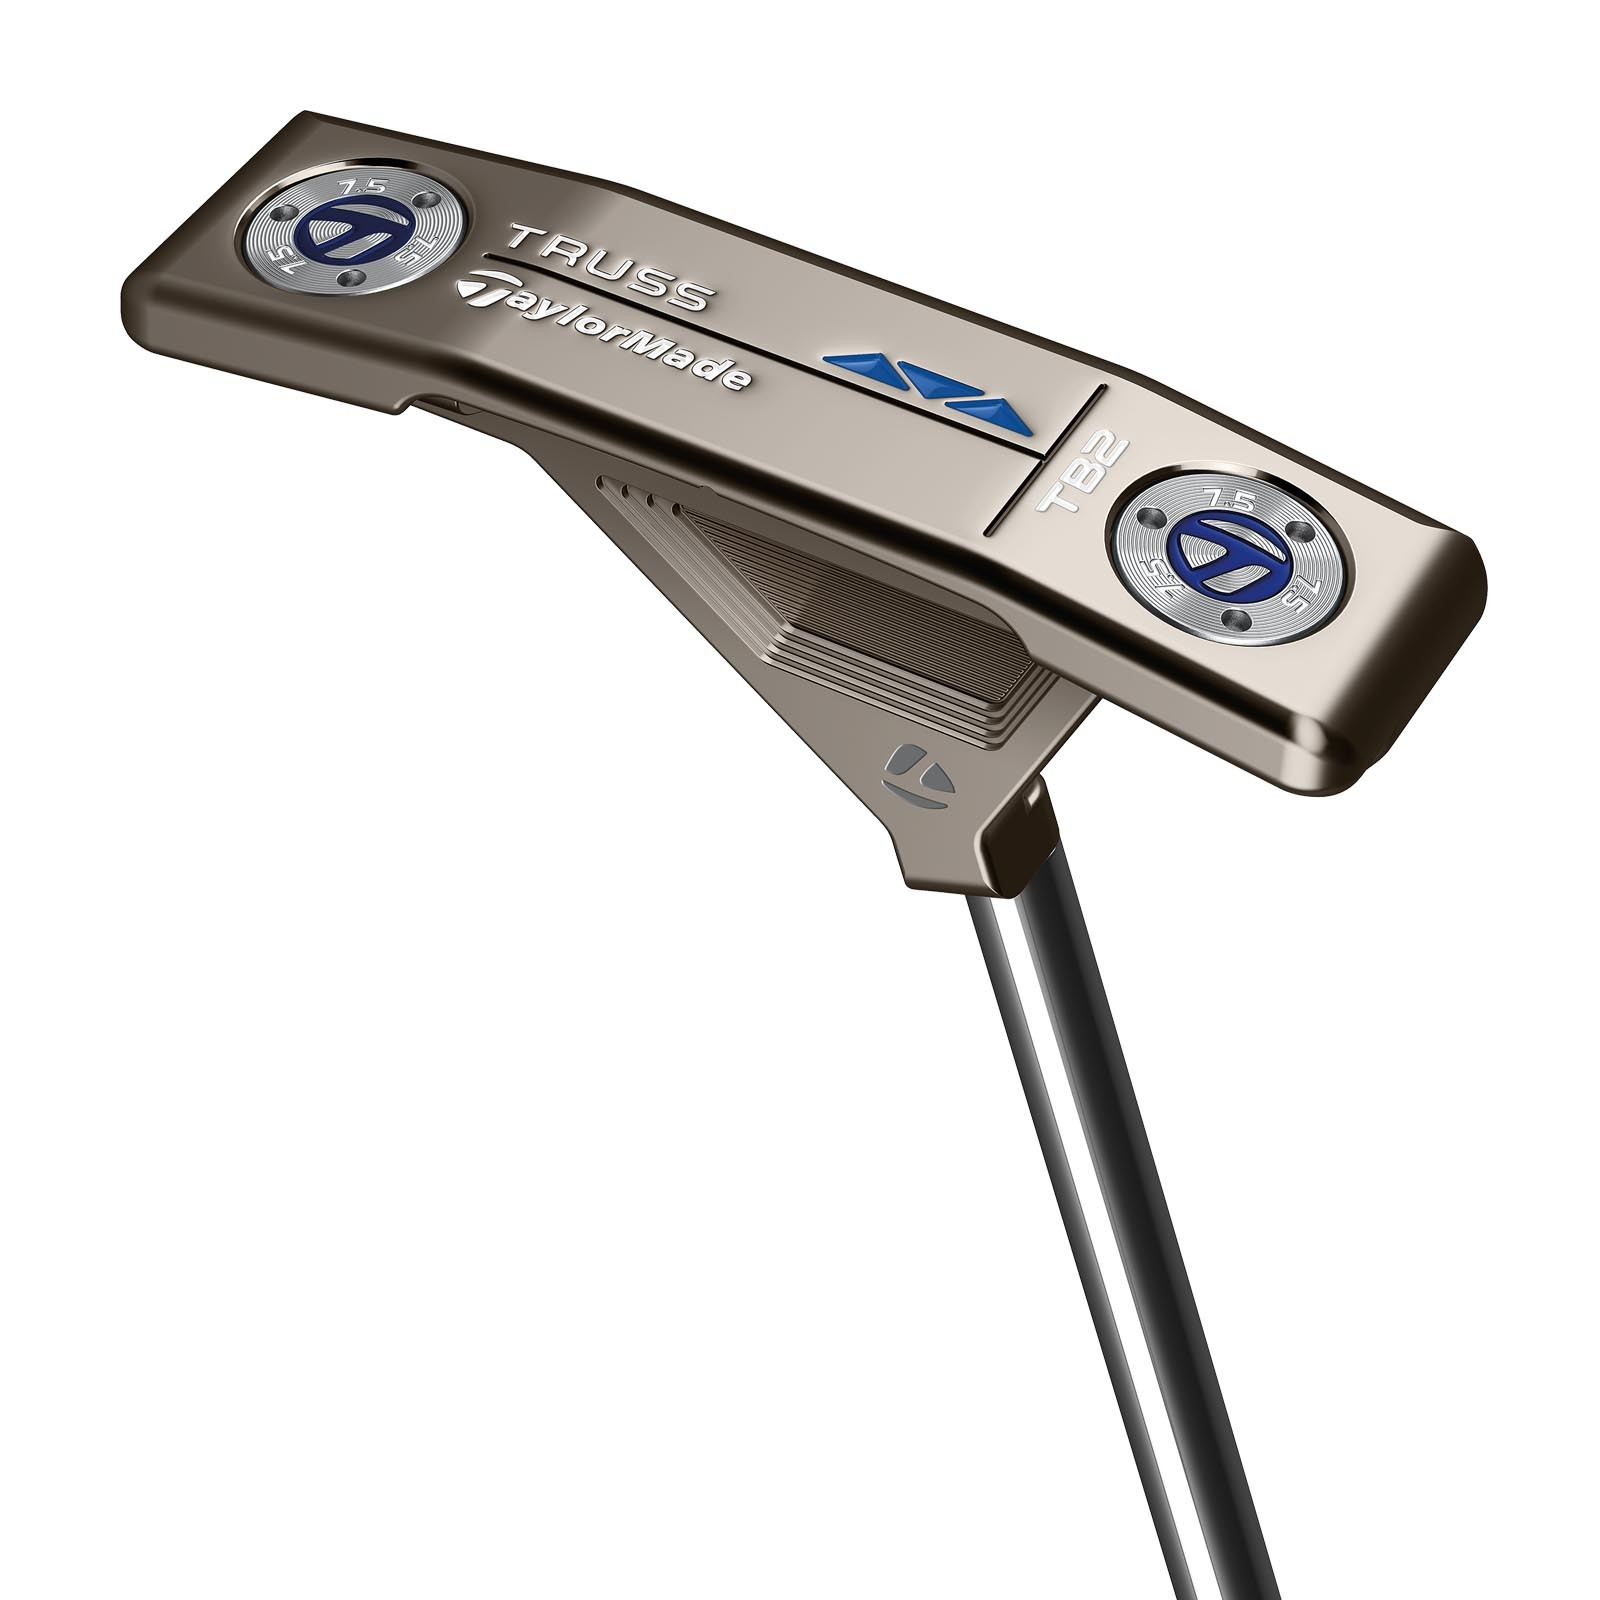 TaylorMade Truss Blade Centre Shafted Putters